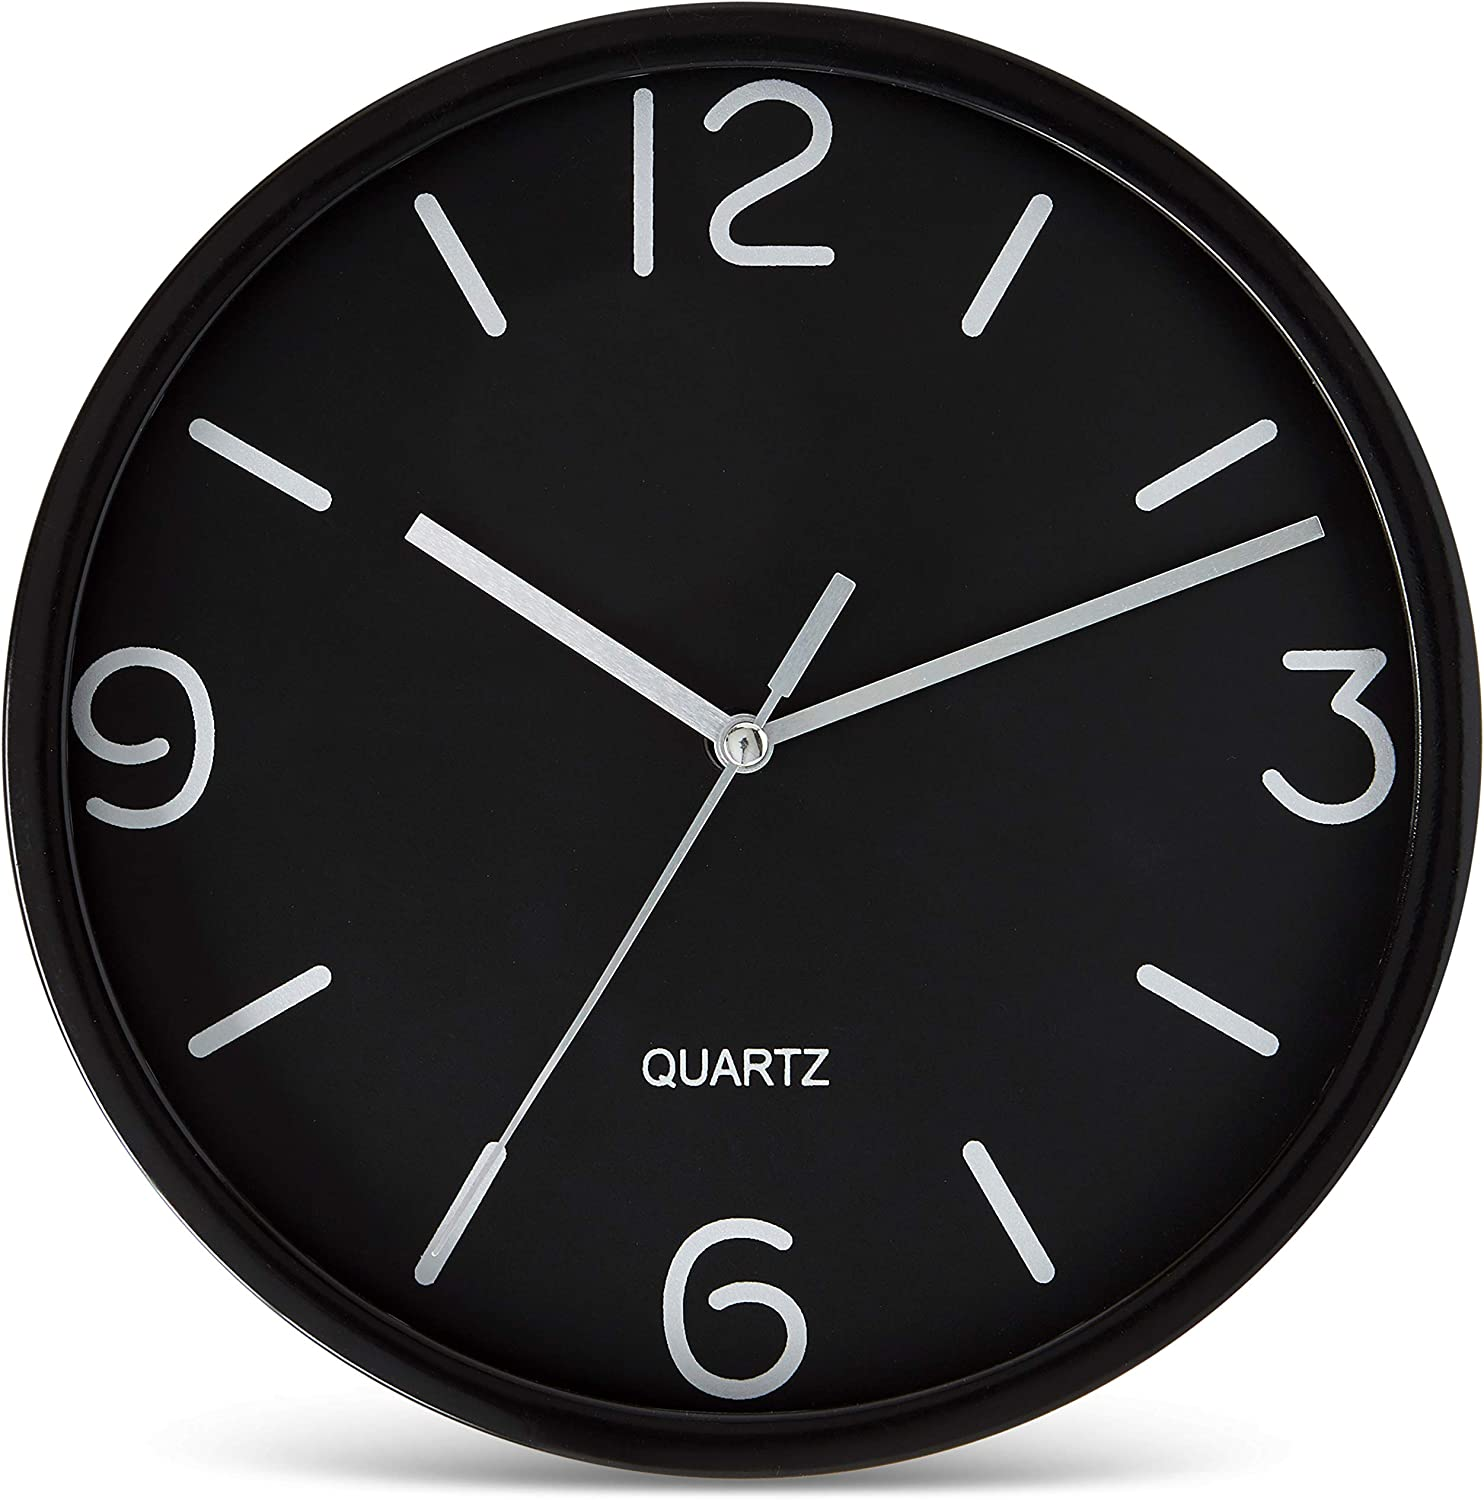 Bernhard Products Black Wall Clock 8 Inch Silent Non Ticking Quartz Battery Operated Easy to Read Decorative Round Sleek Design for Home Kitchen Bedroom Office Living Room Clocks, Silver Numbers